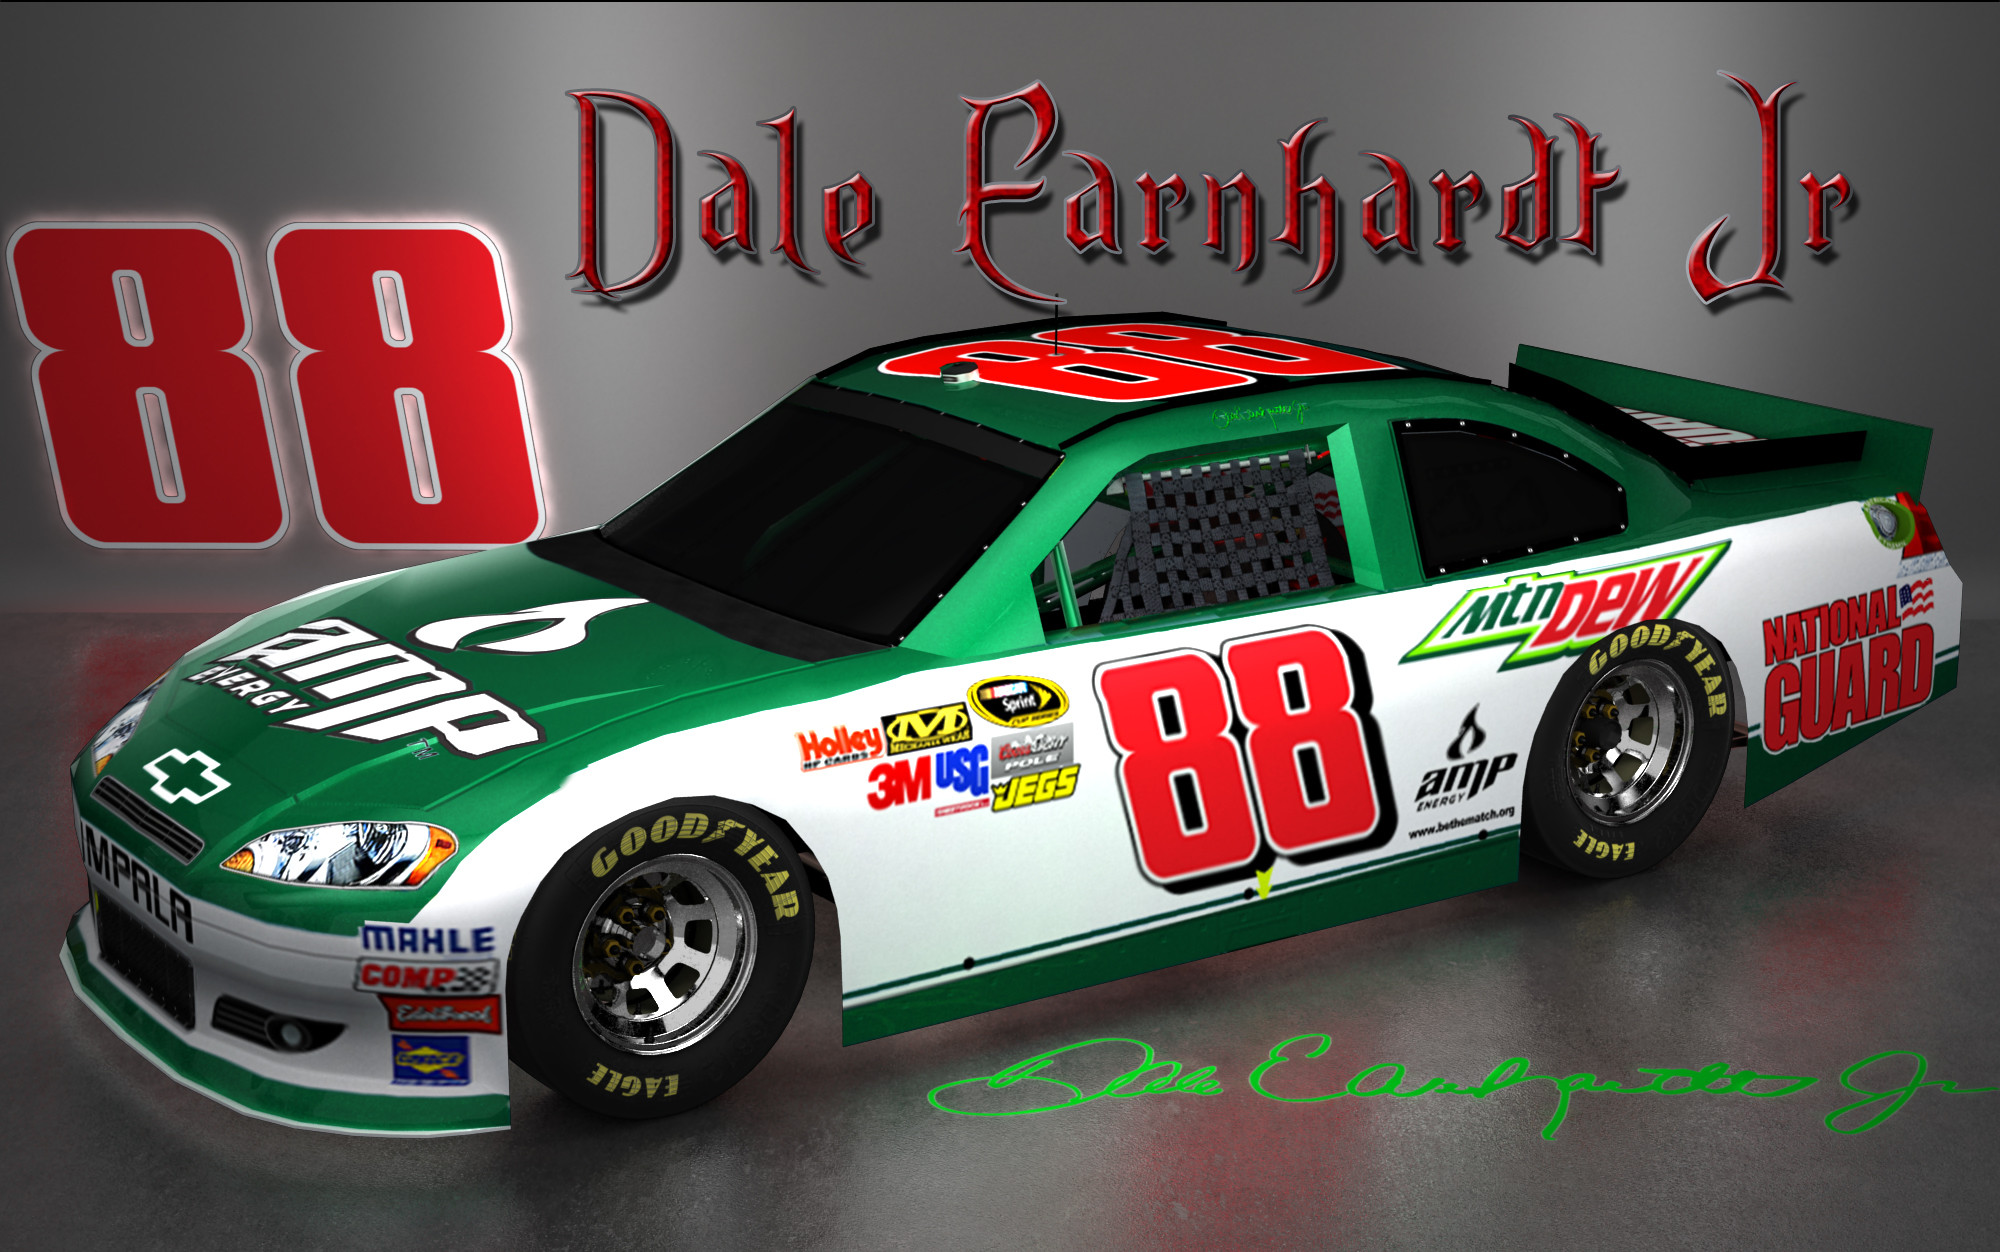 2000x1252 Dale Earnhardt Jr NASCAR Signature Wallpaper